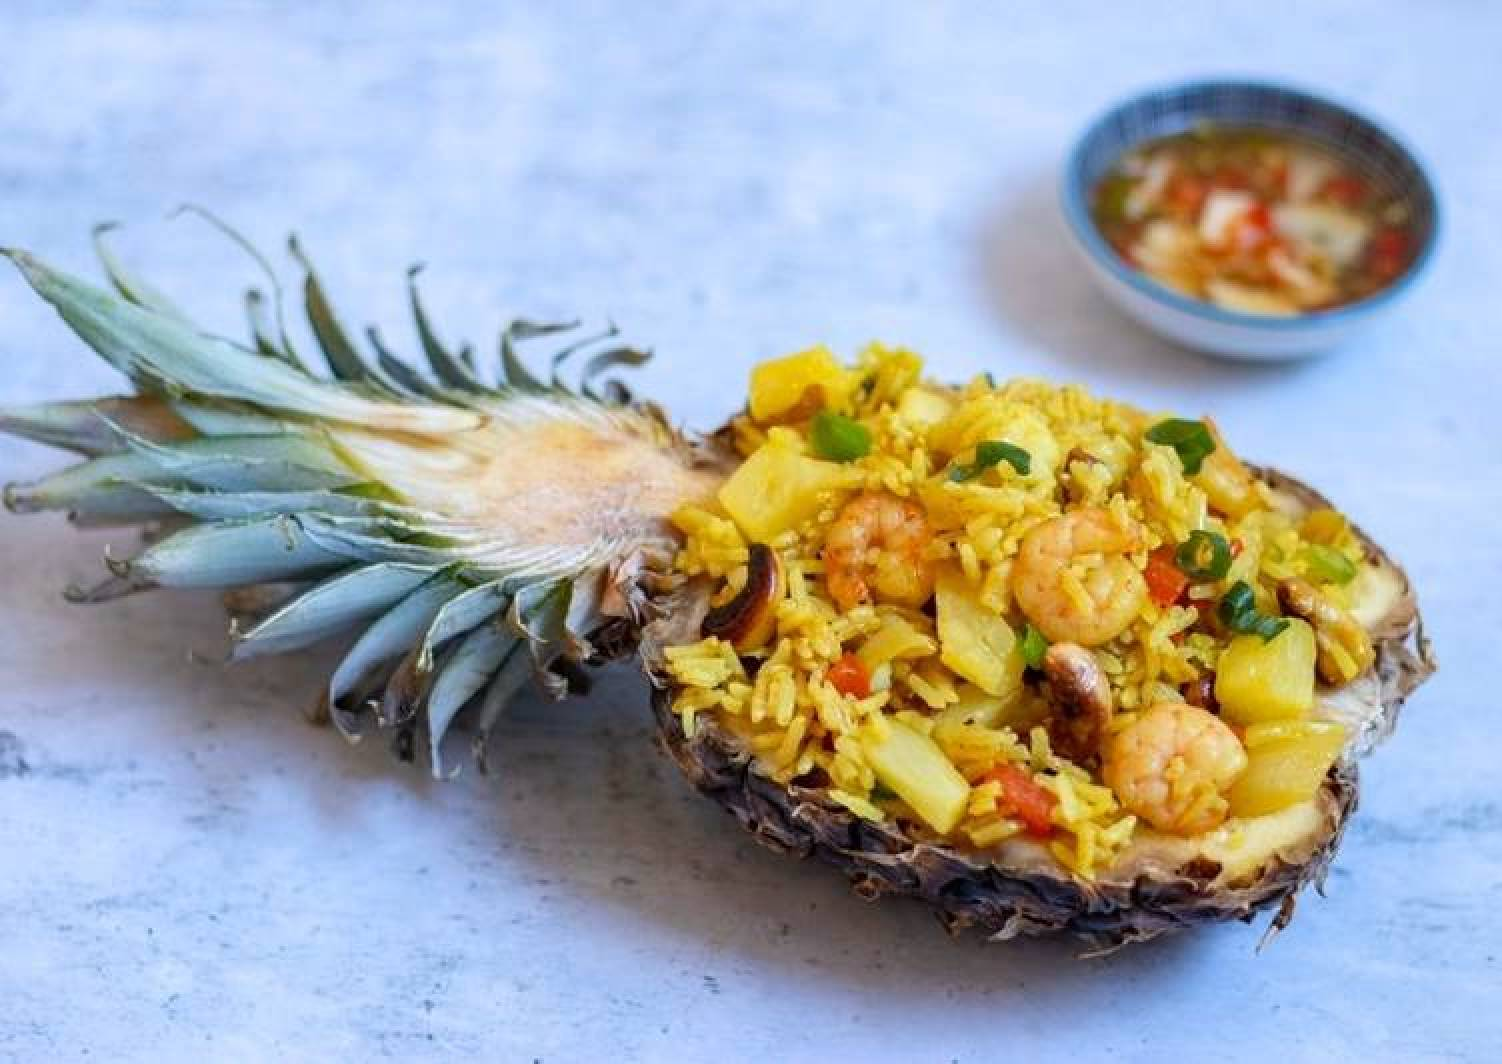 Step By Step Guide To Make Super Quick Homemade Thai Pineapple Stir Fried Rice The Tasty Dinner